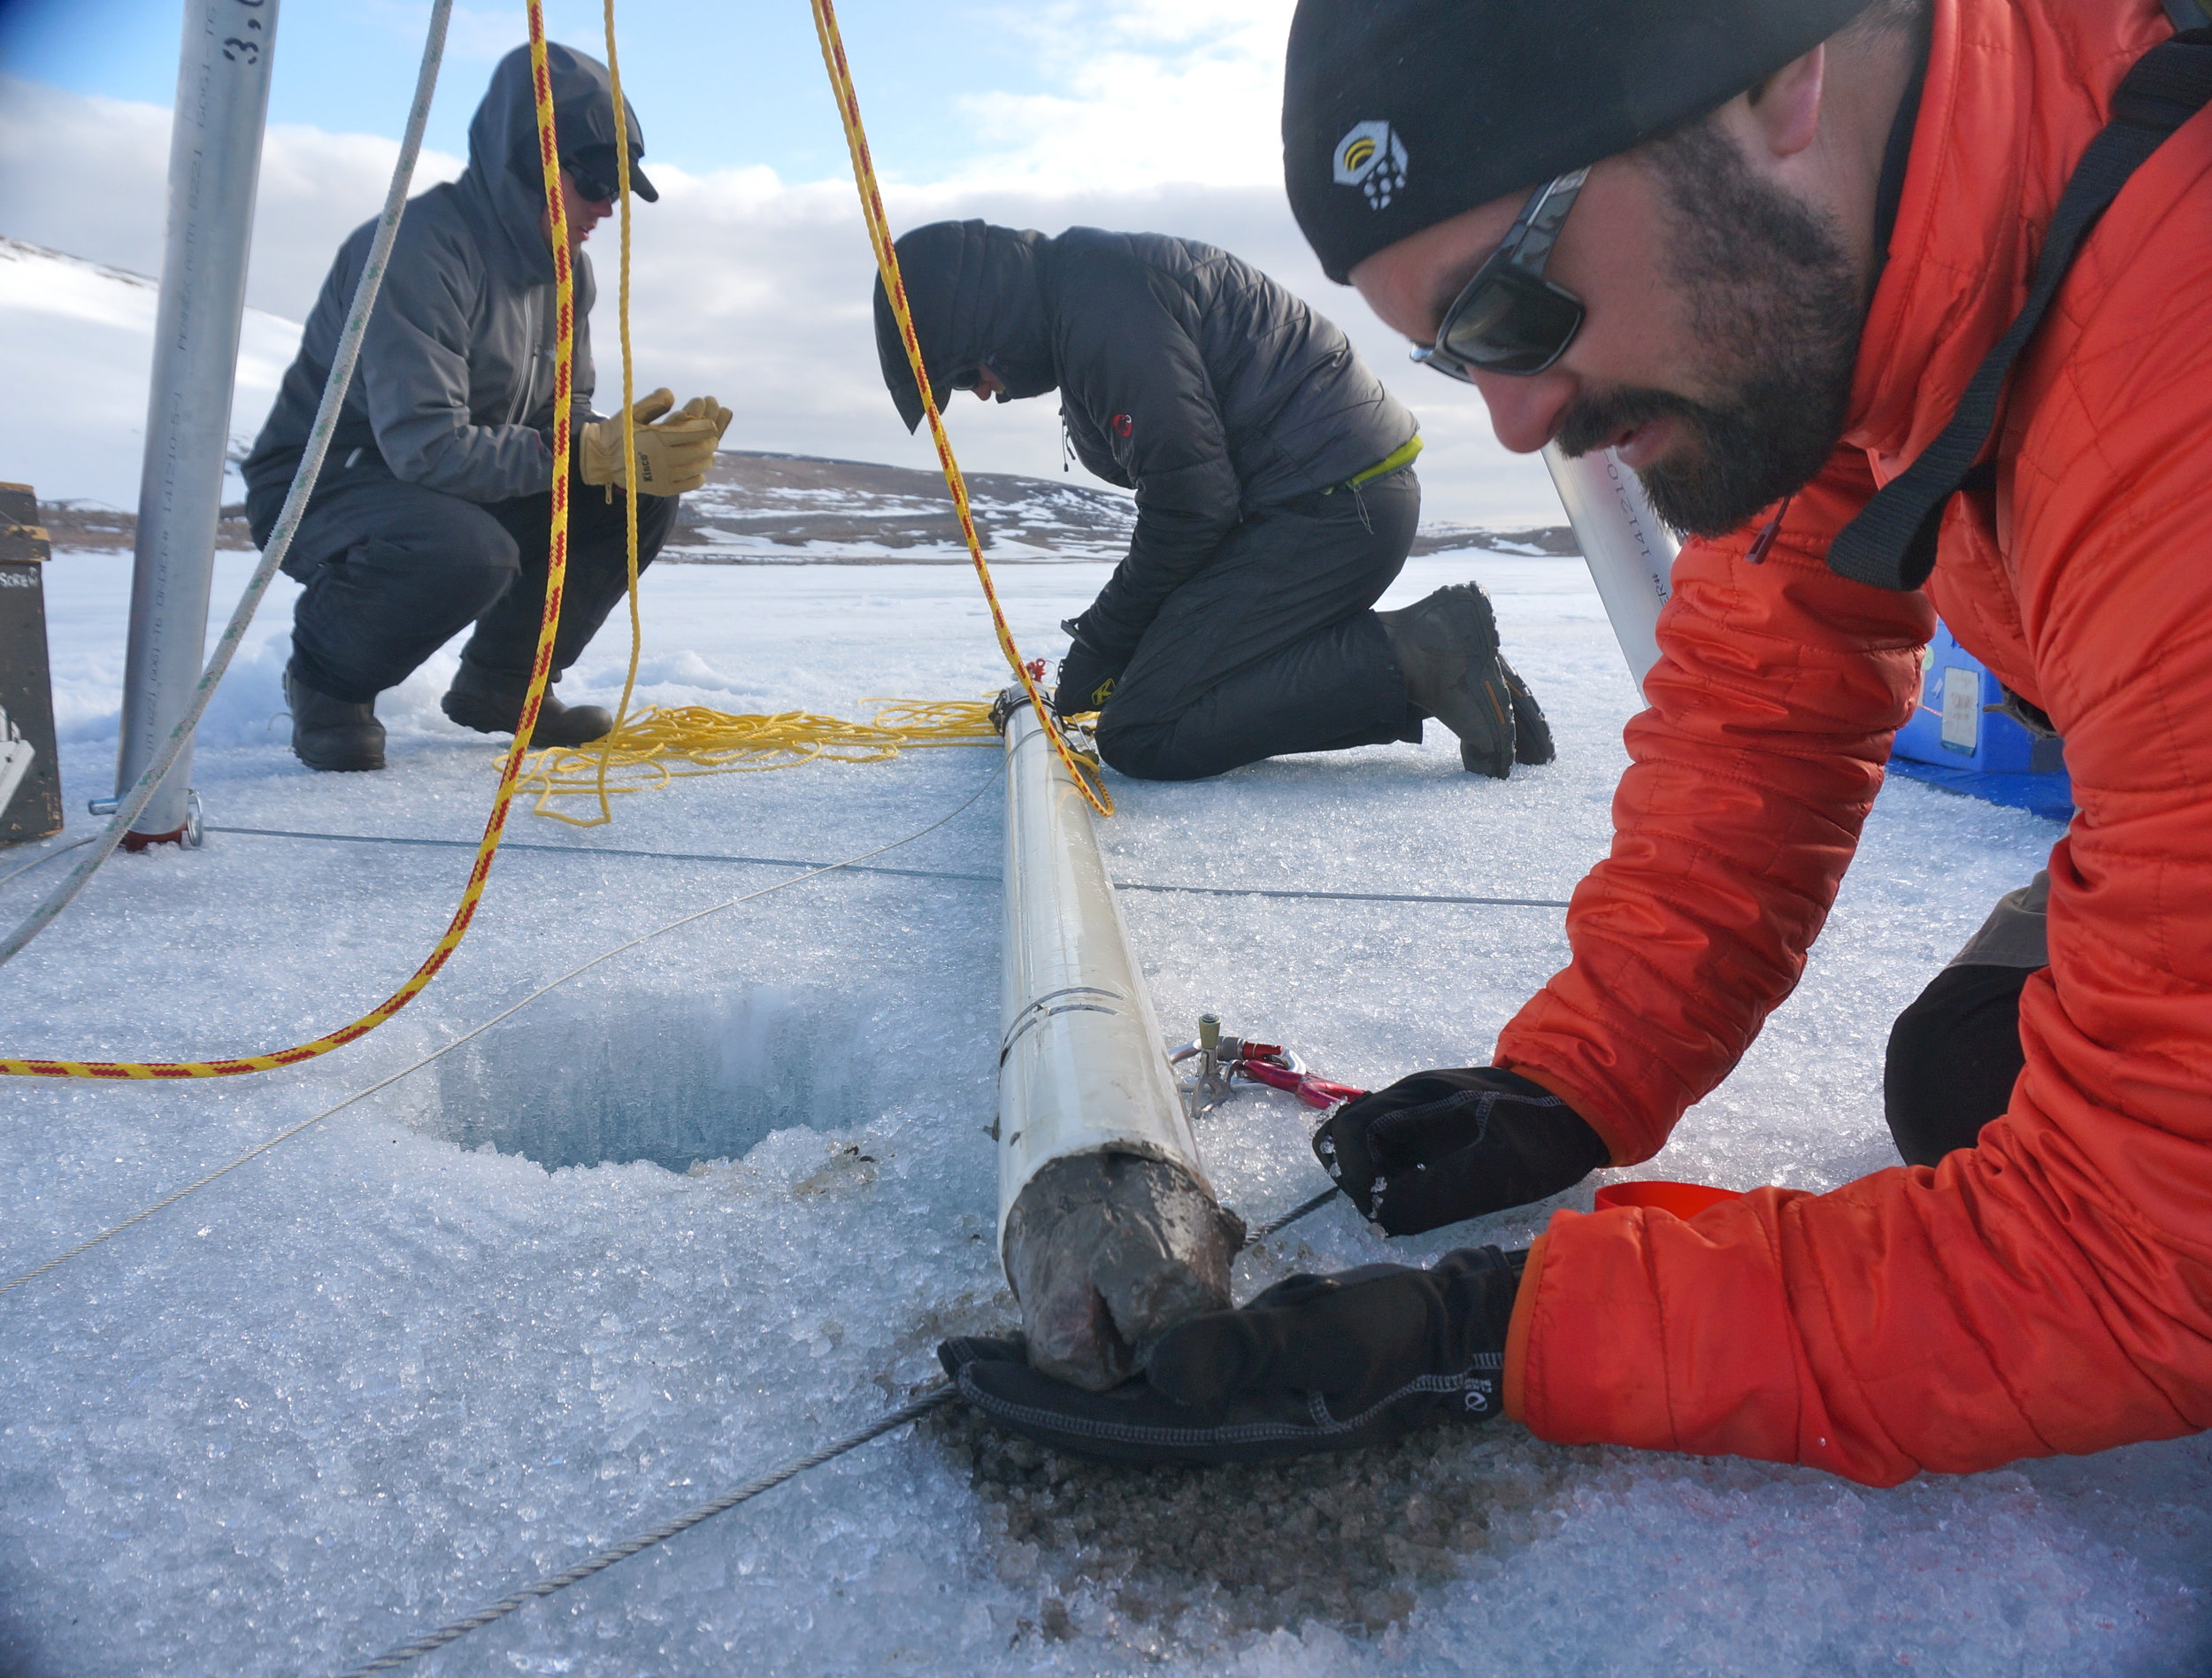 Ryan O'Grady (right), Eric Lutz (center) and Fredrik Eriksson (left) recover a sediment core from a frozen lake during the spring expedition. The small rock at the bottom of the core (in Ryan's hand) suggests that the entire Holocene record was recovered in this 1 m core. Photo: Erich Osterberg.